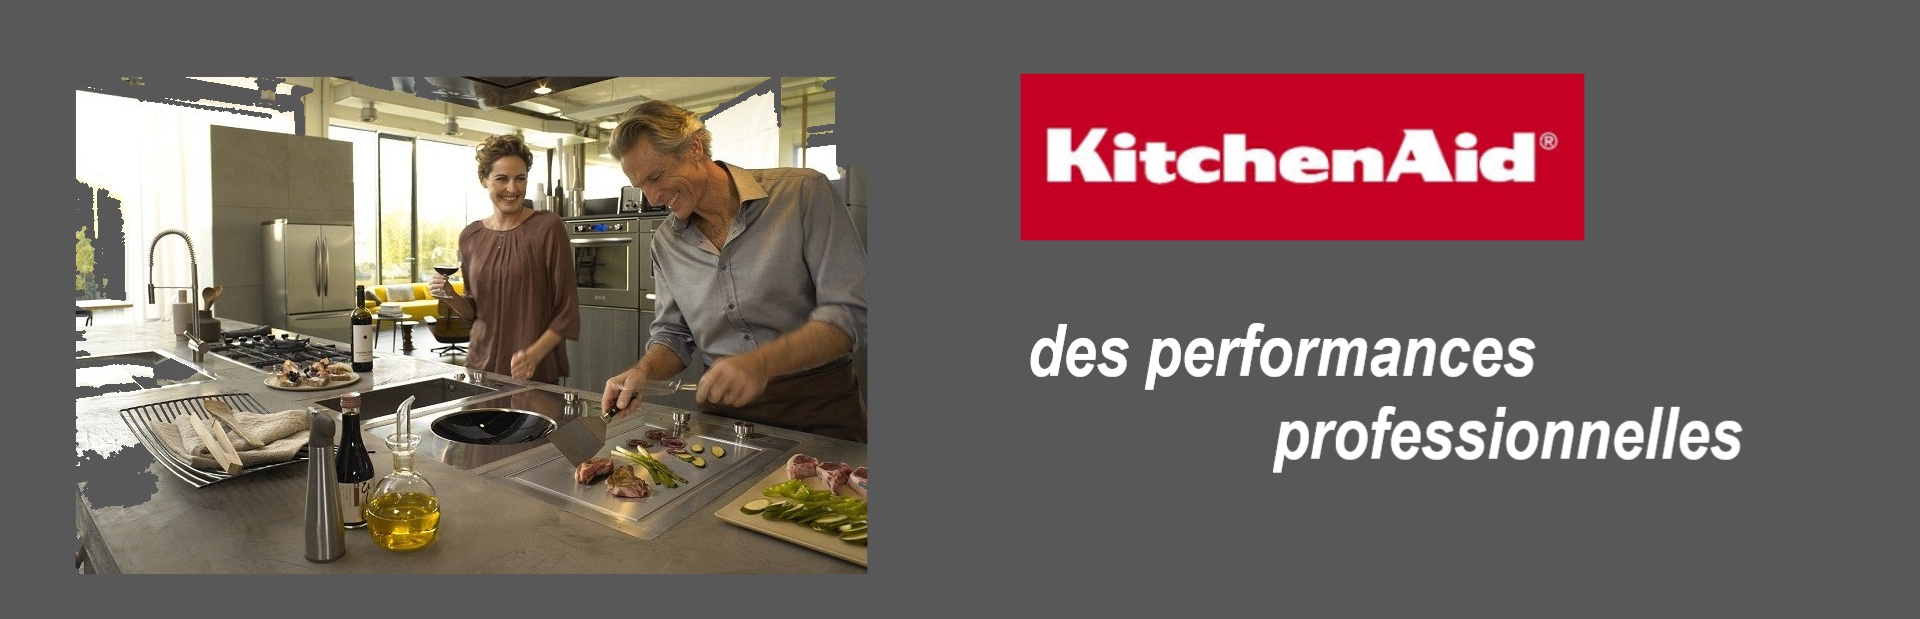 kitchenaid -performances-professionnelles